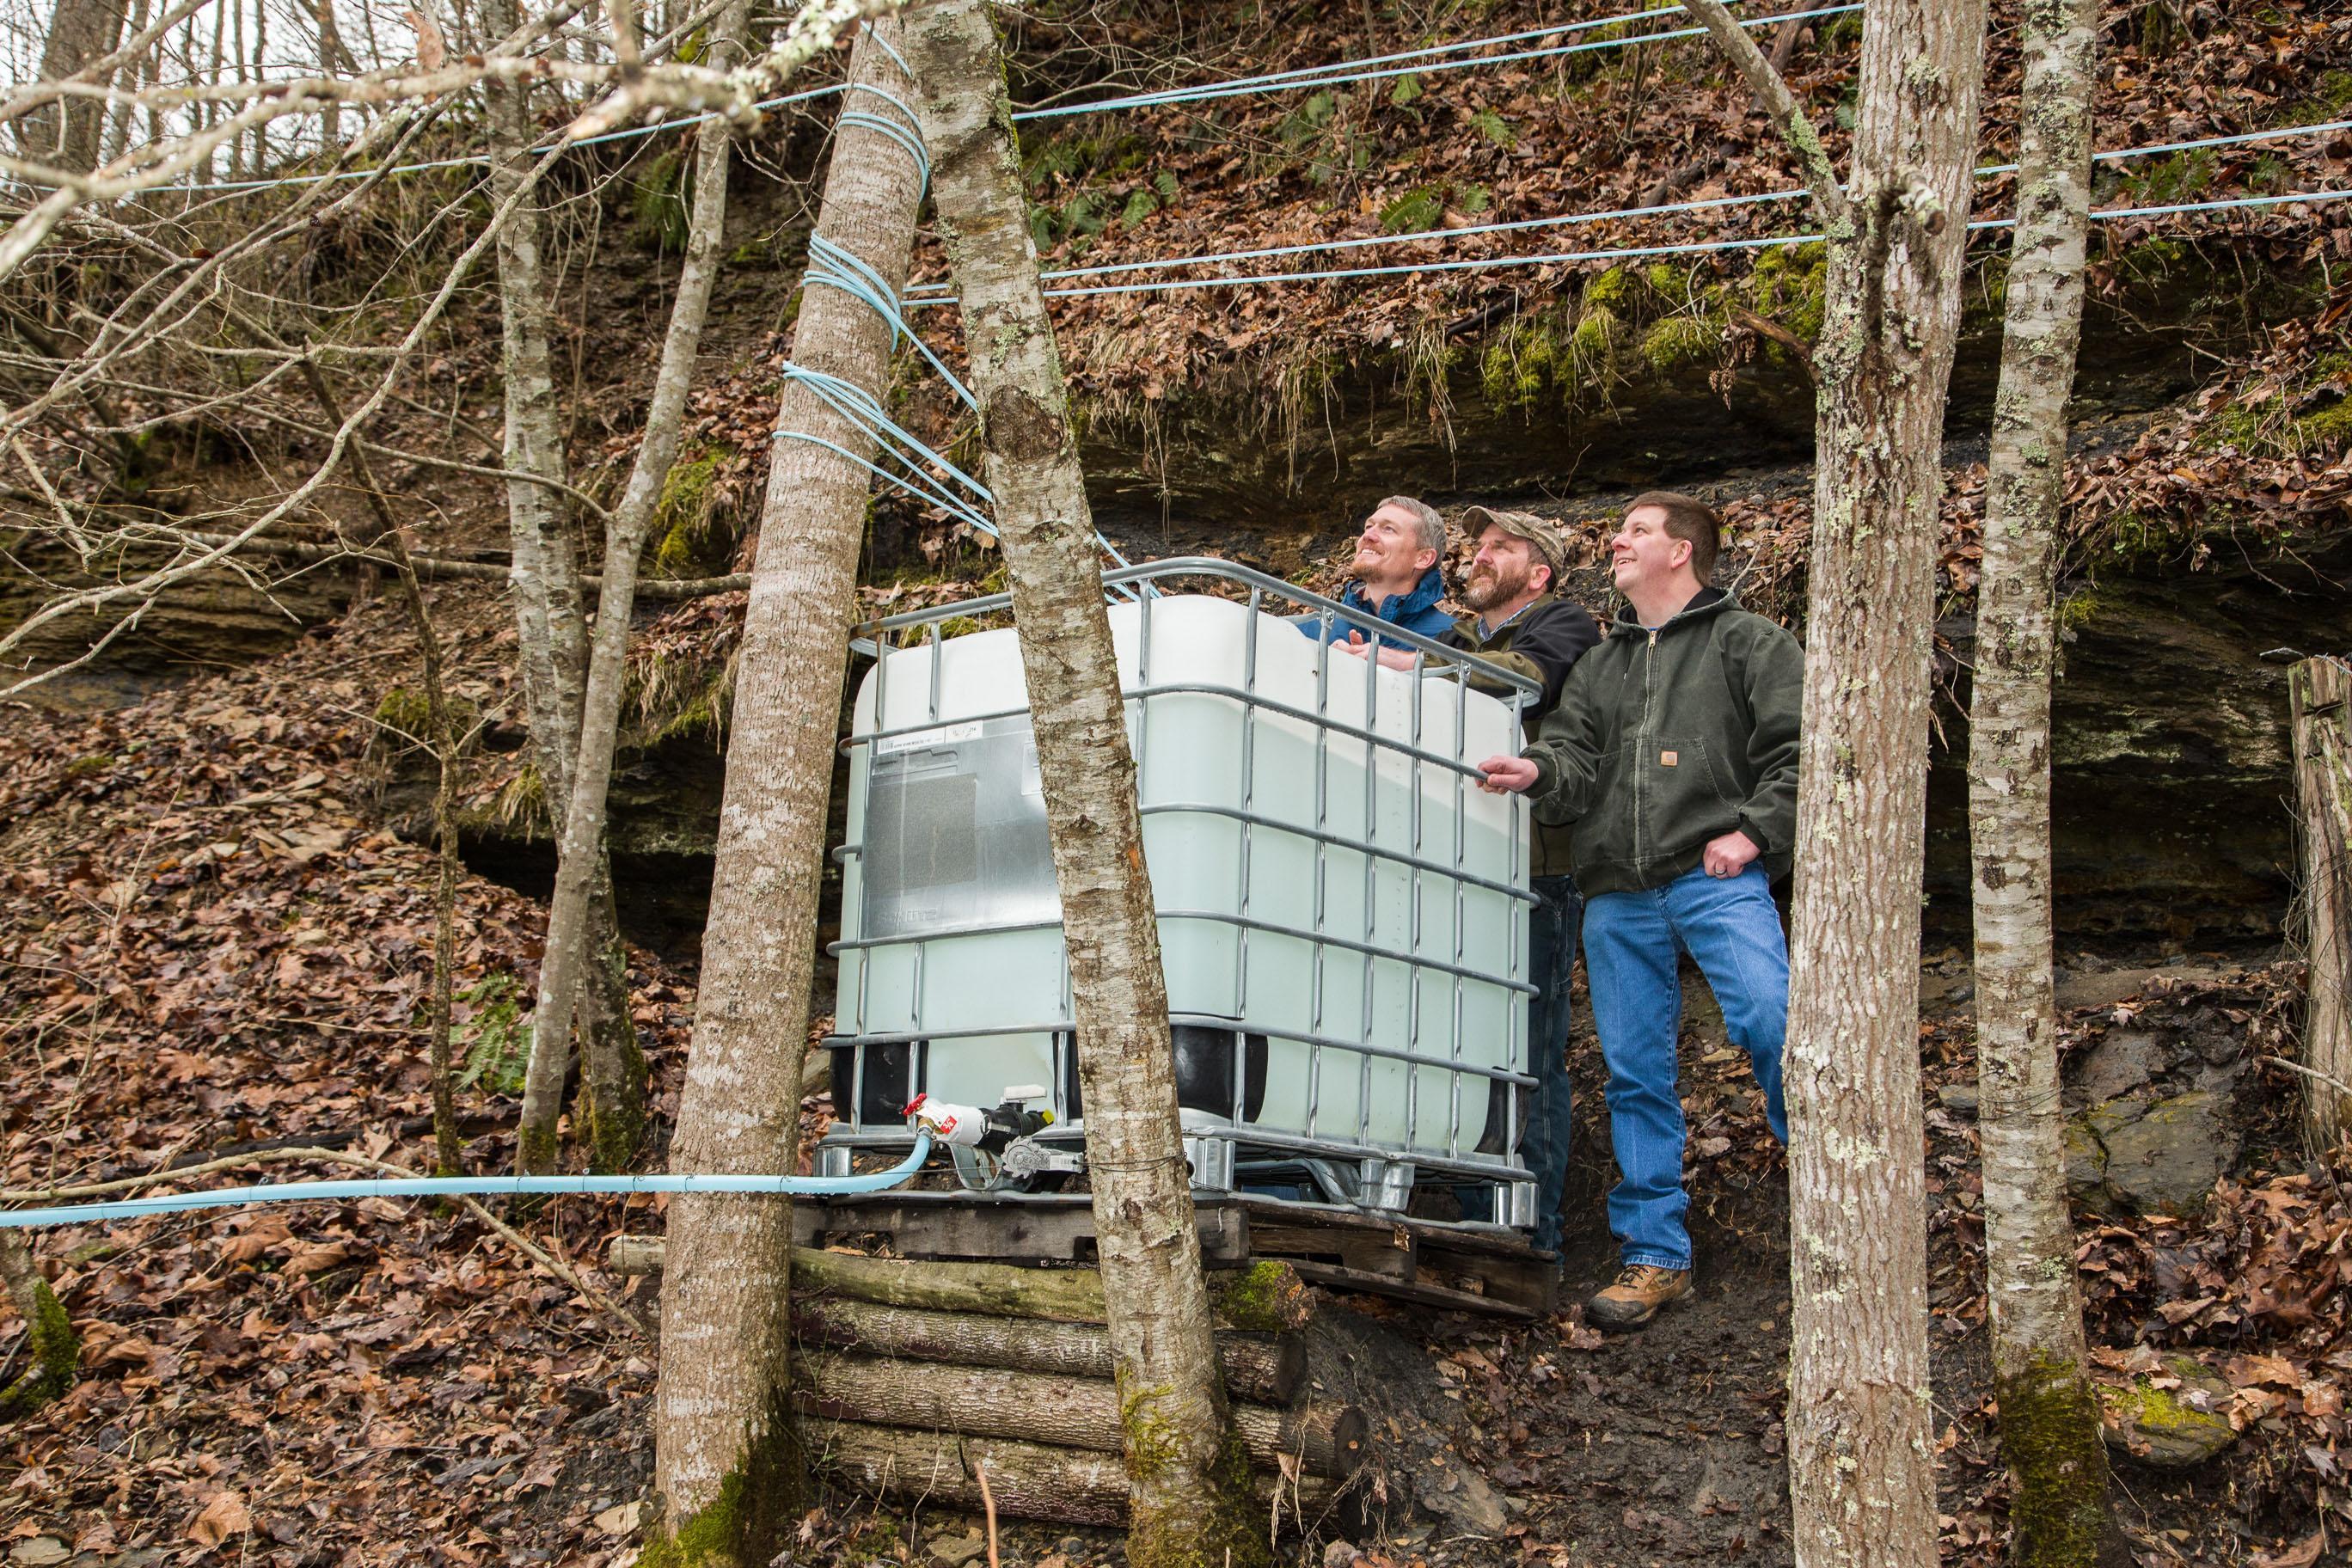 (L to R) Shad Baker, Seth Long, and Jeremy Williams discuss the season's collection. Here, a collection tank holds sap from multiple trees at Long's Southdown Farm in Letcher County. From the tank, the sap will run downhill to the sugarhouse, where the Lo